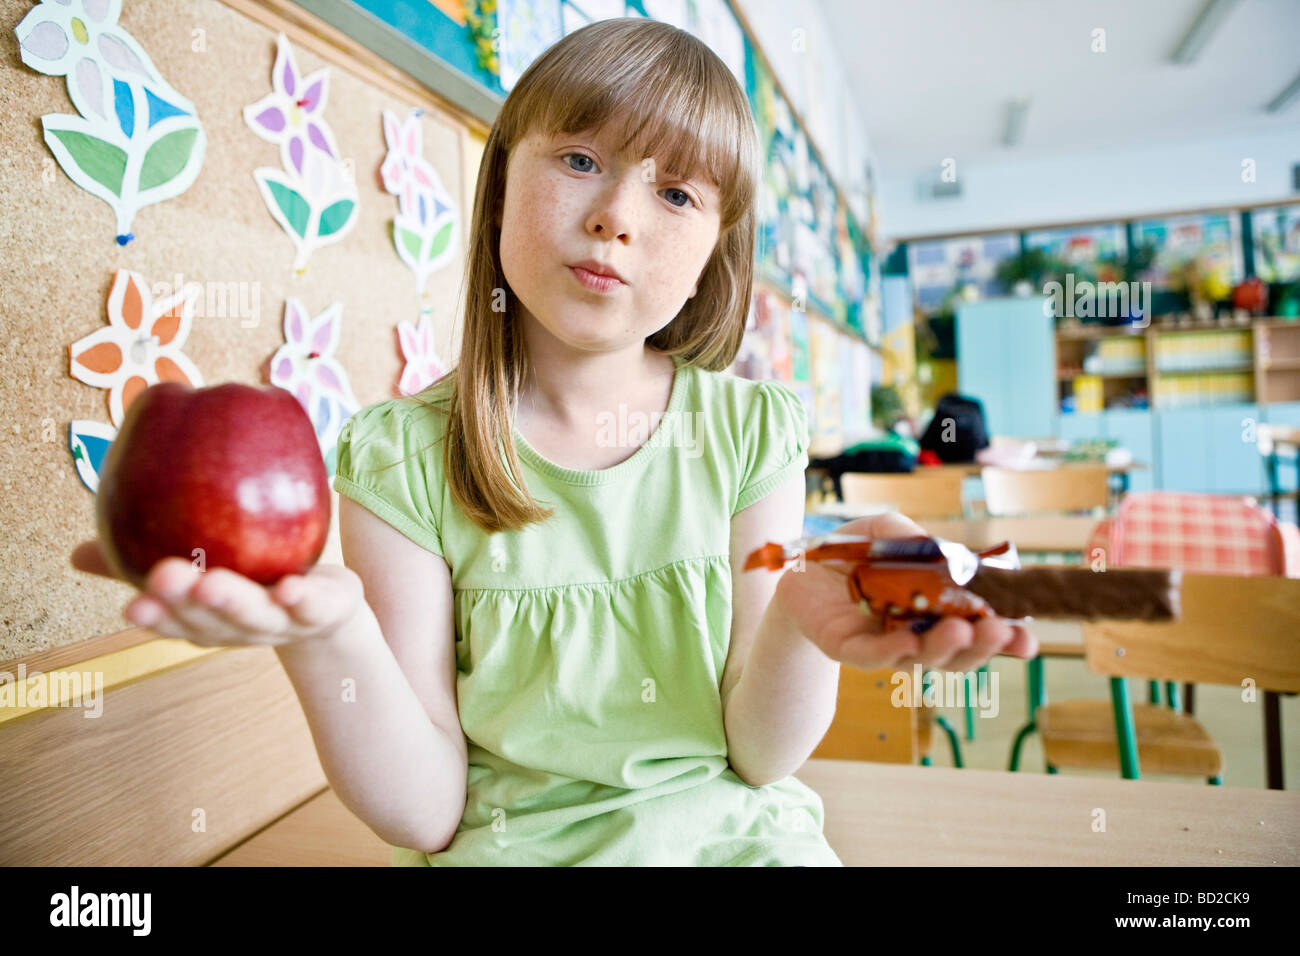 Girl eating lunch at school Photo Stock